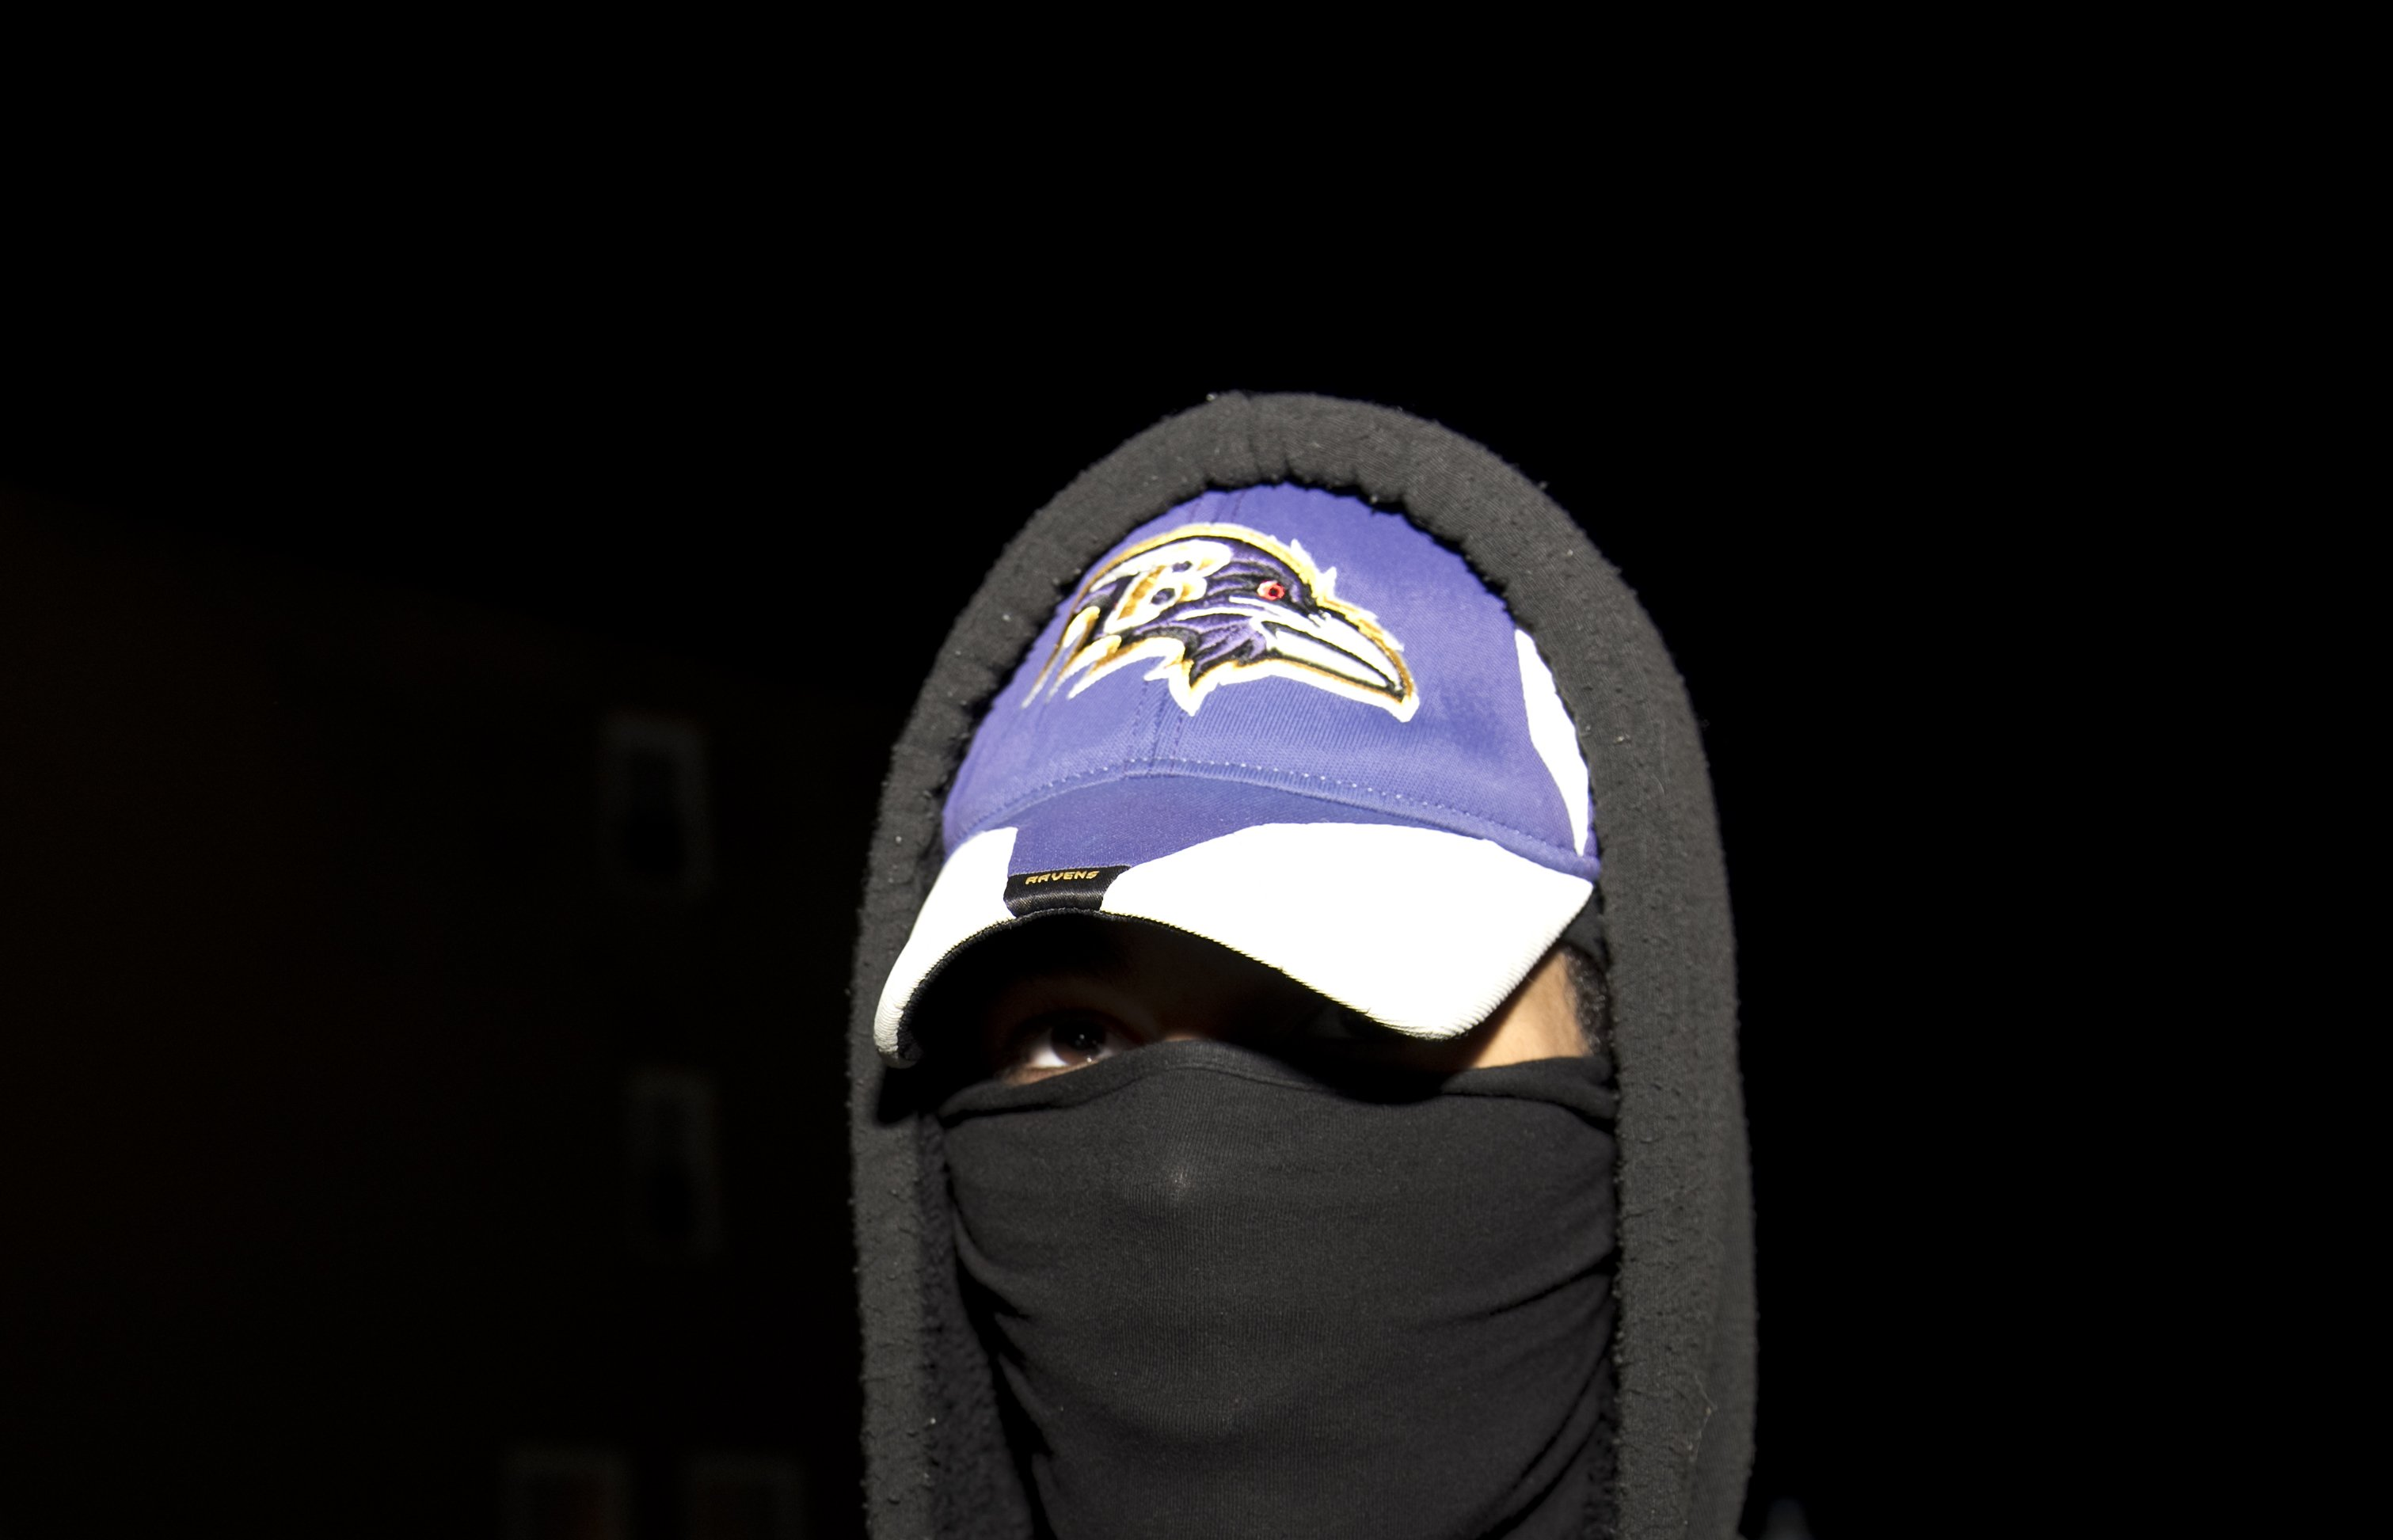 A protester wearing a Baltimore Ravens cap covers his face during a rally for Freddie Gray outside Baltimore Police Department Western District station in Baltimore on April 22, 2015.